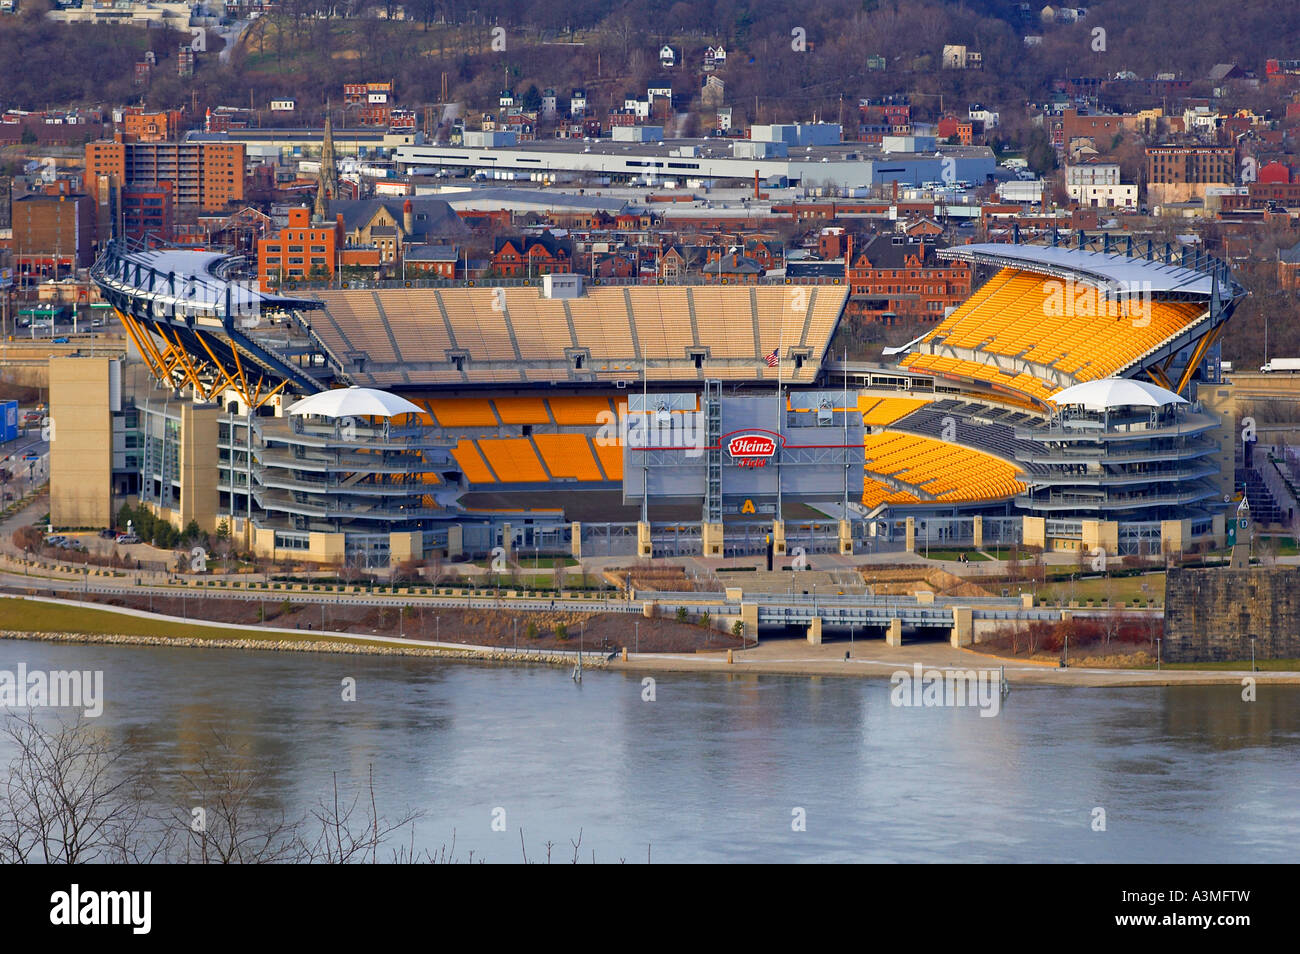 f180ef78a Heinz field football stadium Pittsburgh PA Stock Photo  10818264 - Alamy